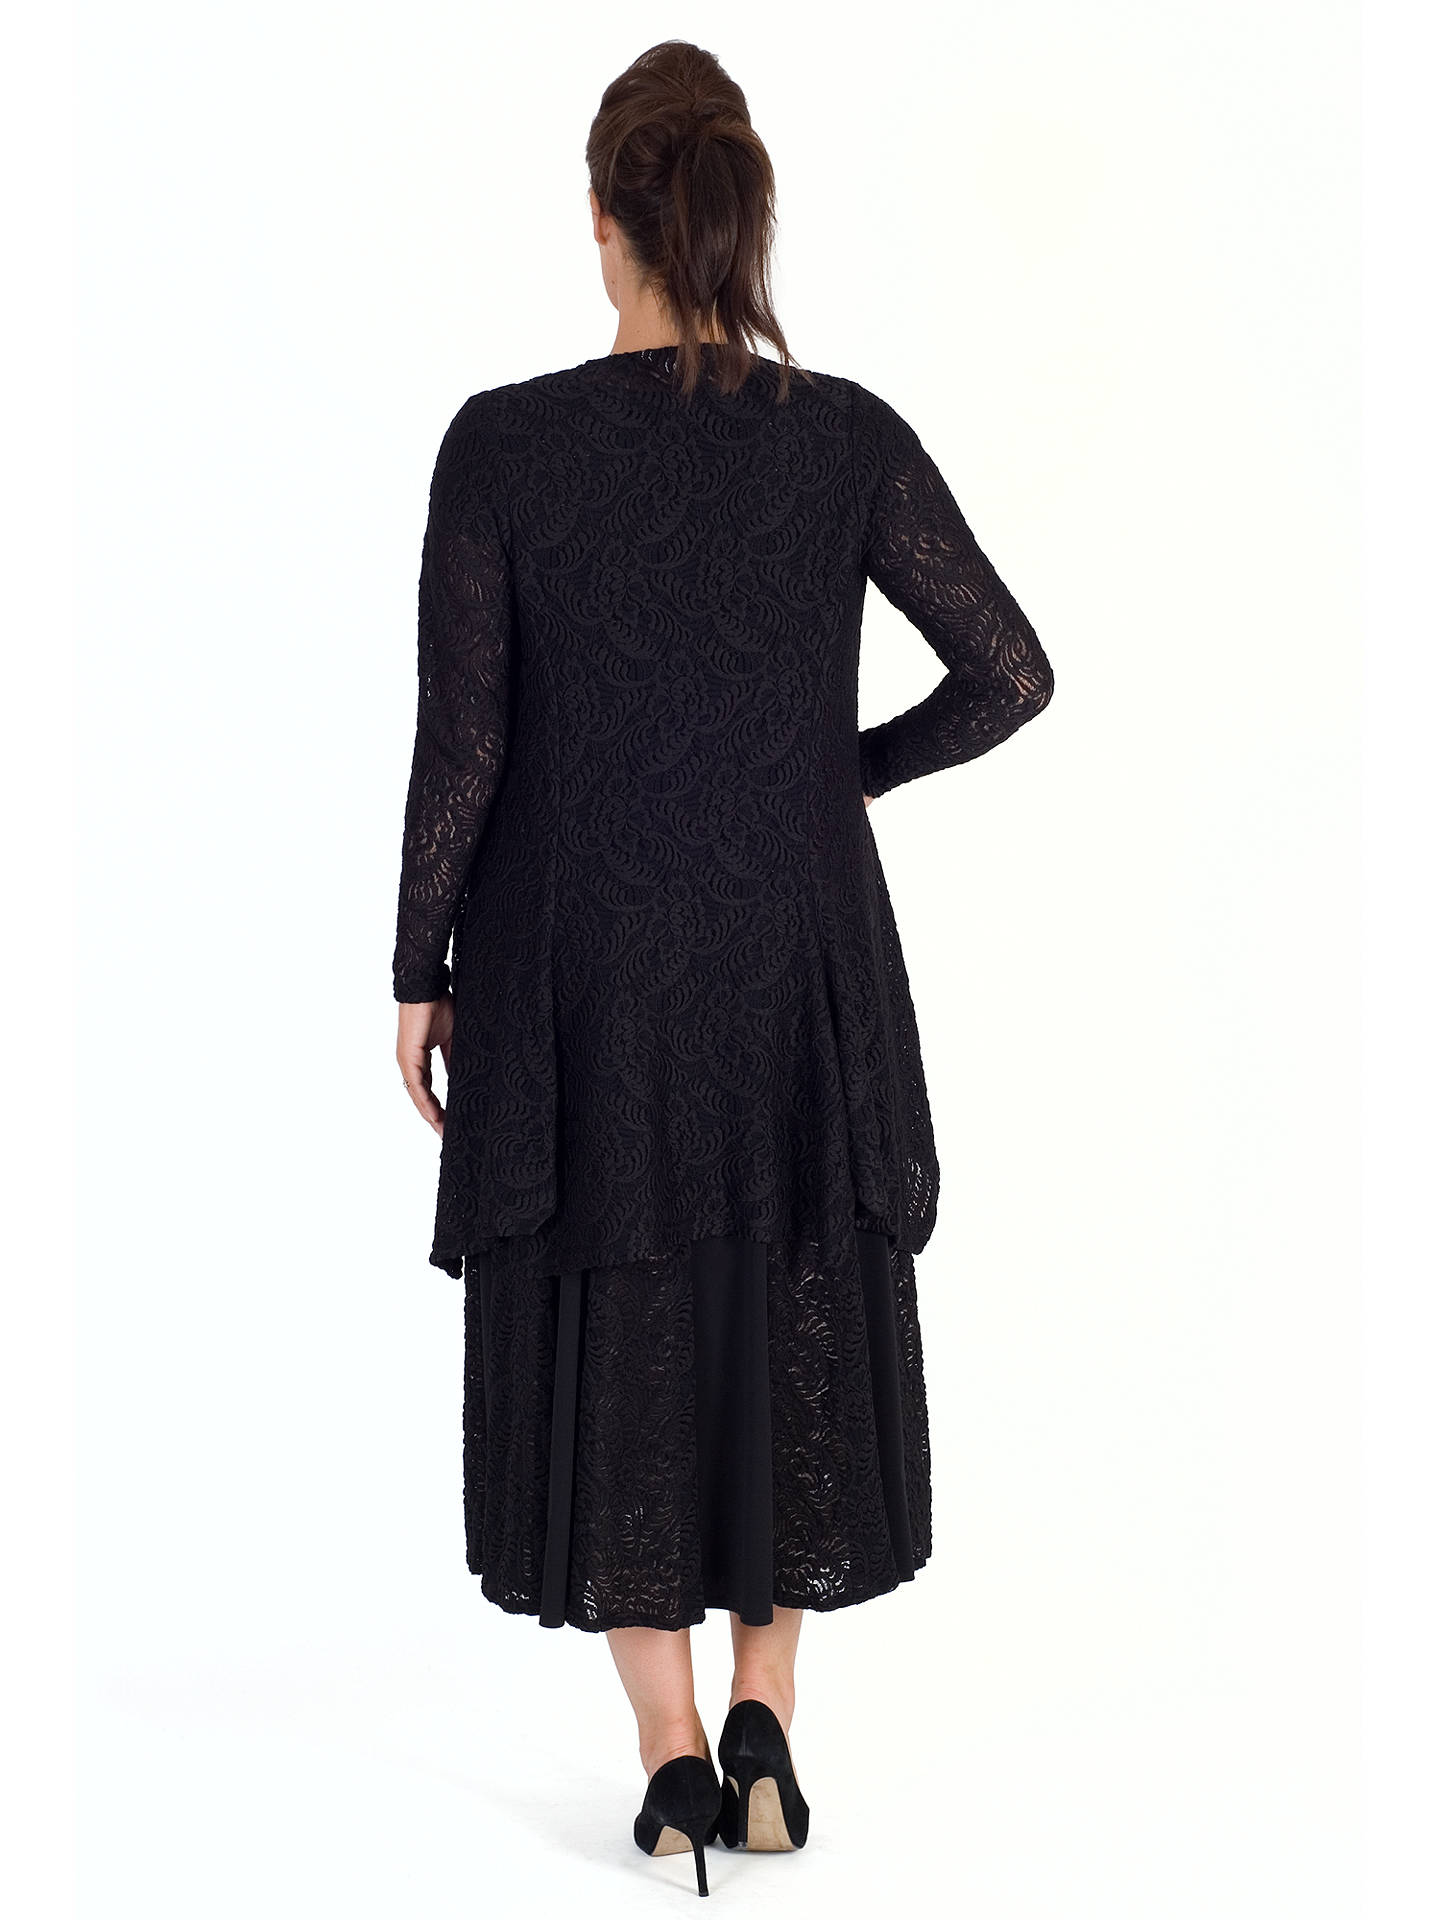 BuyChesca Scallop Lace Shrug, Black, 12-14 Online at johnlewis.com